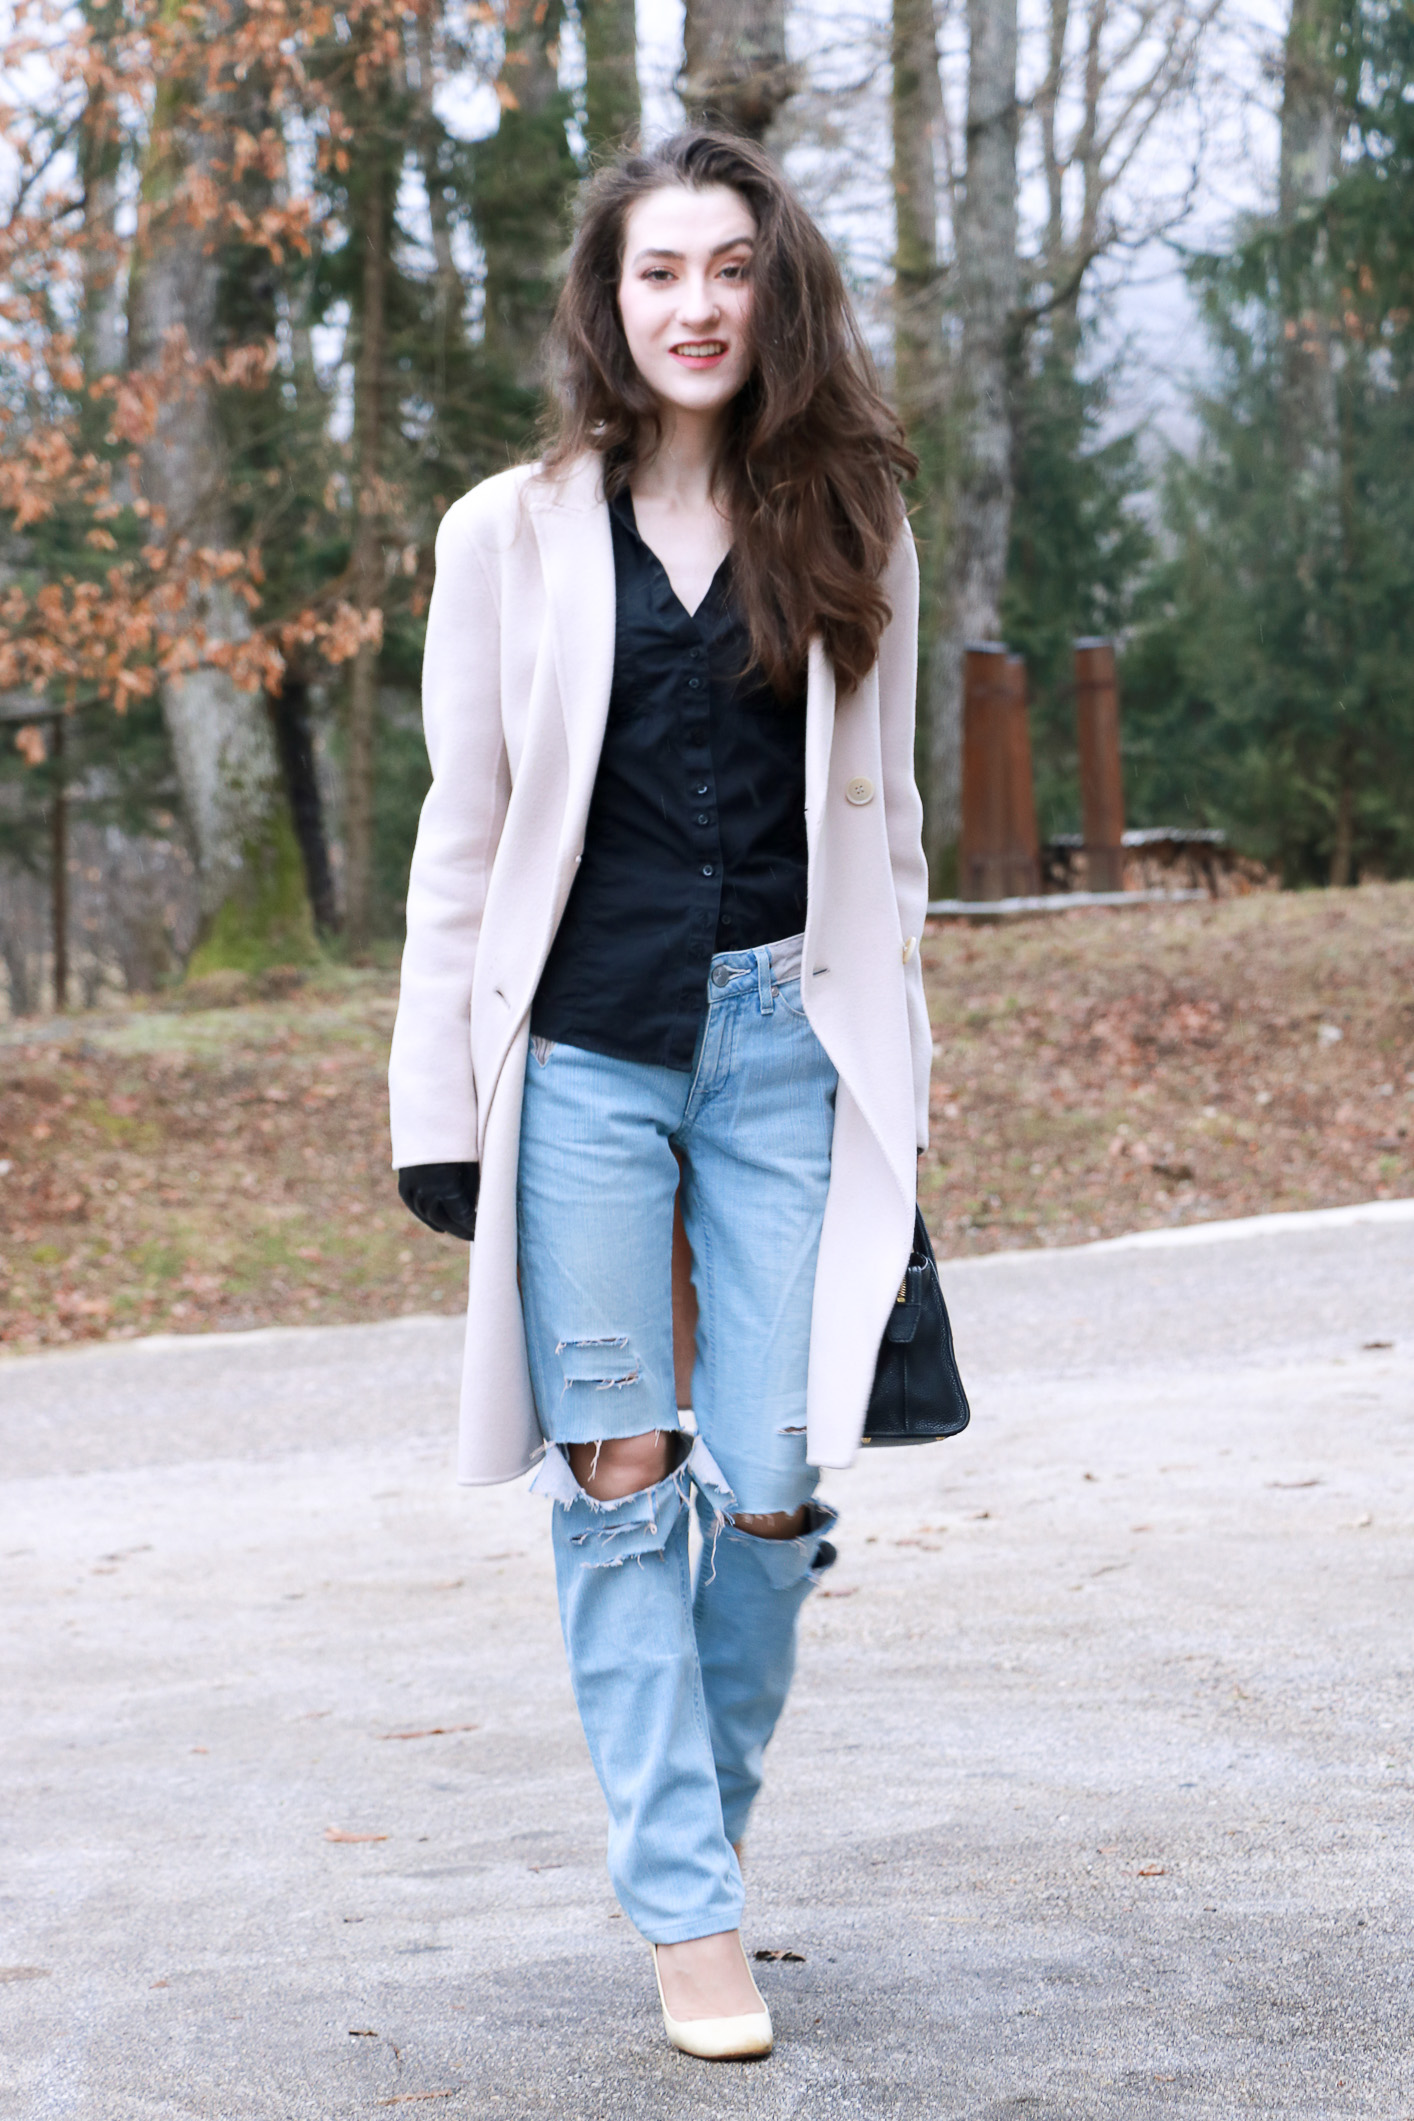 Fashion blogger Veronika Lipar of Brunette From Wall Street sharing how to style blue ripped jeans for a chic Friday Outfit